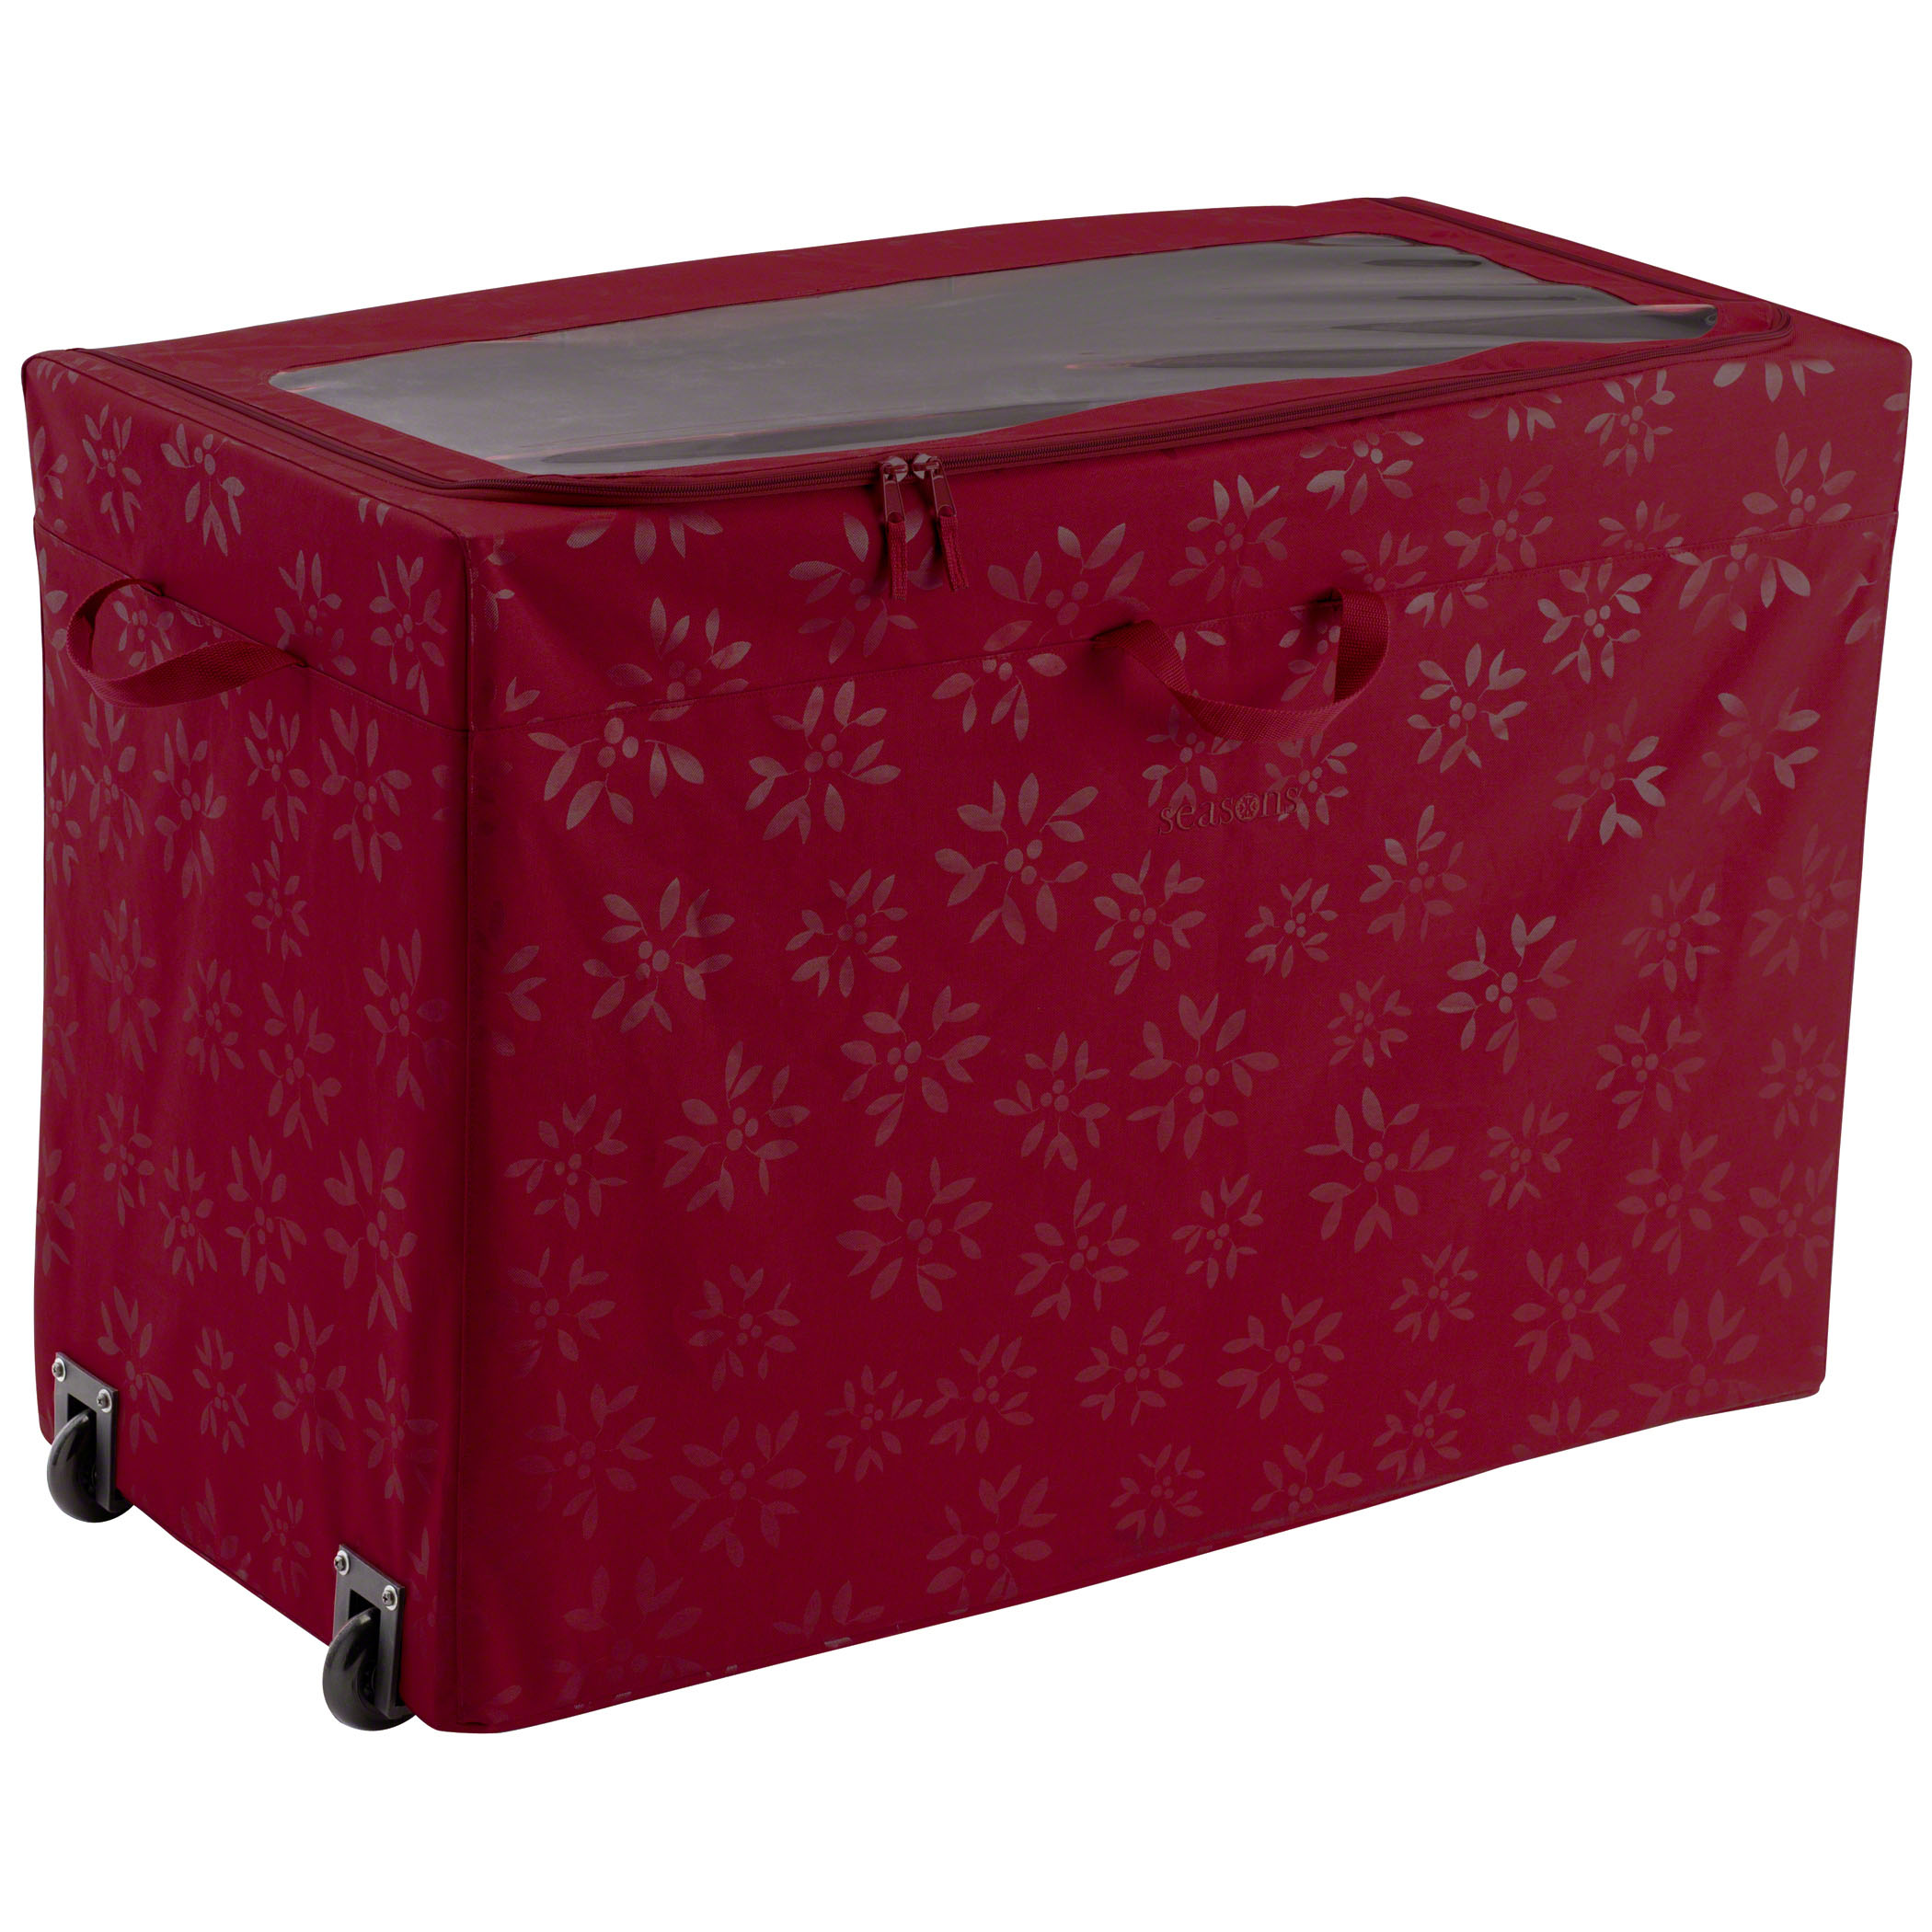 Classic Accessories Seasons All-Purpose Rolling Storage Bin - Heavy-Duty Holiday Storage